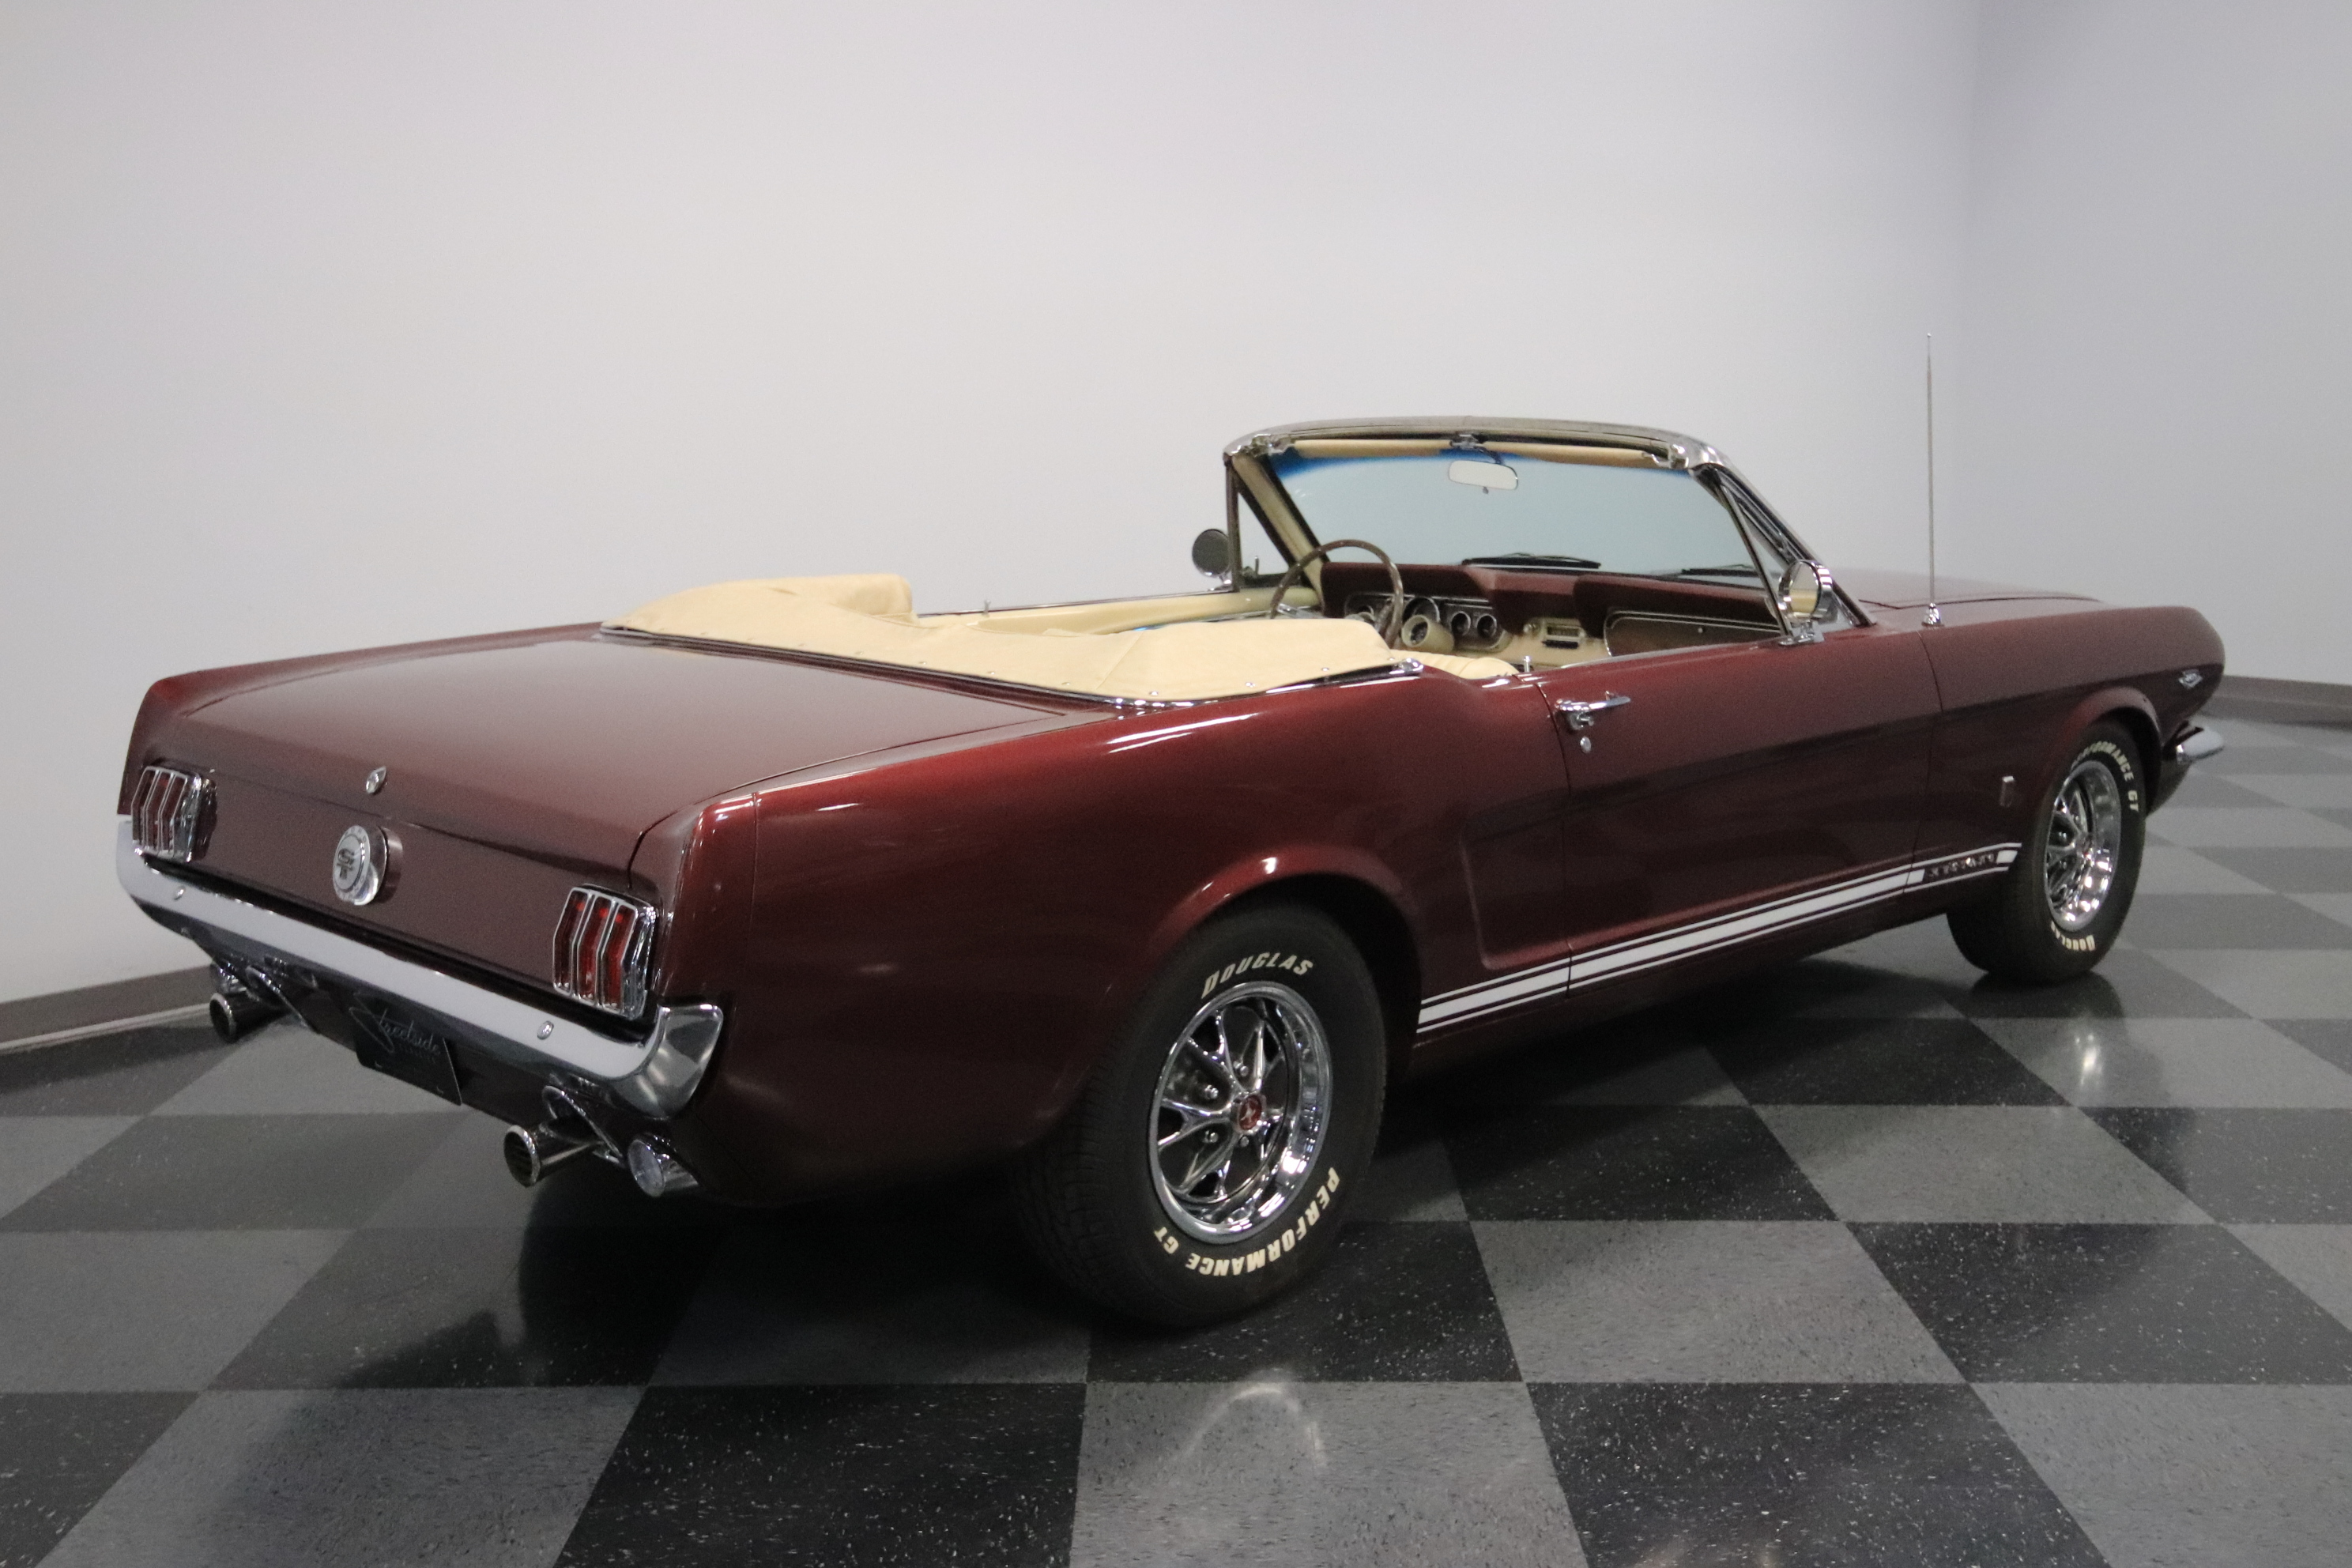 1966 Ford Mustang GT K-Code: K-CDE 289 V8, 4 ON THE FLR, RPRDUCTION OWNERS PCKT, FRONT DISCS, TOP-NOTCH RESTO